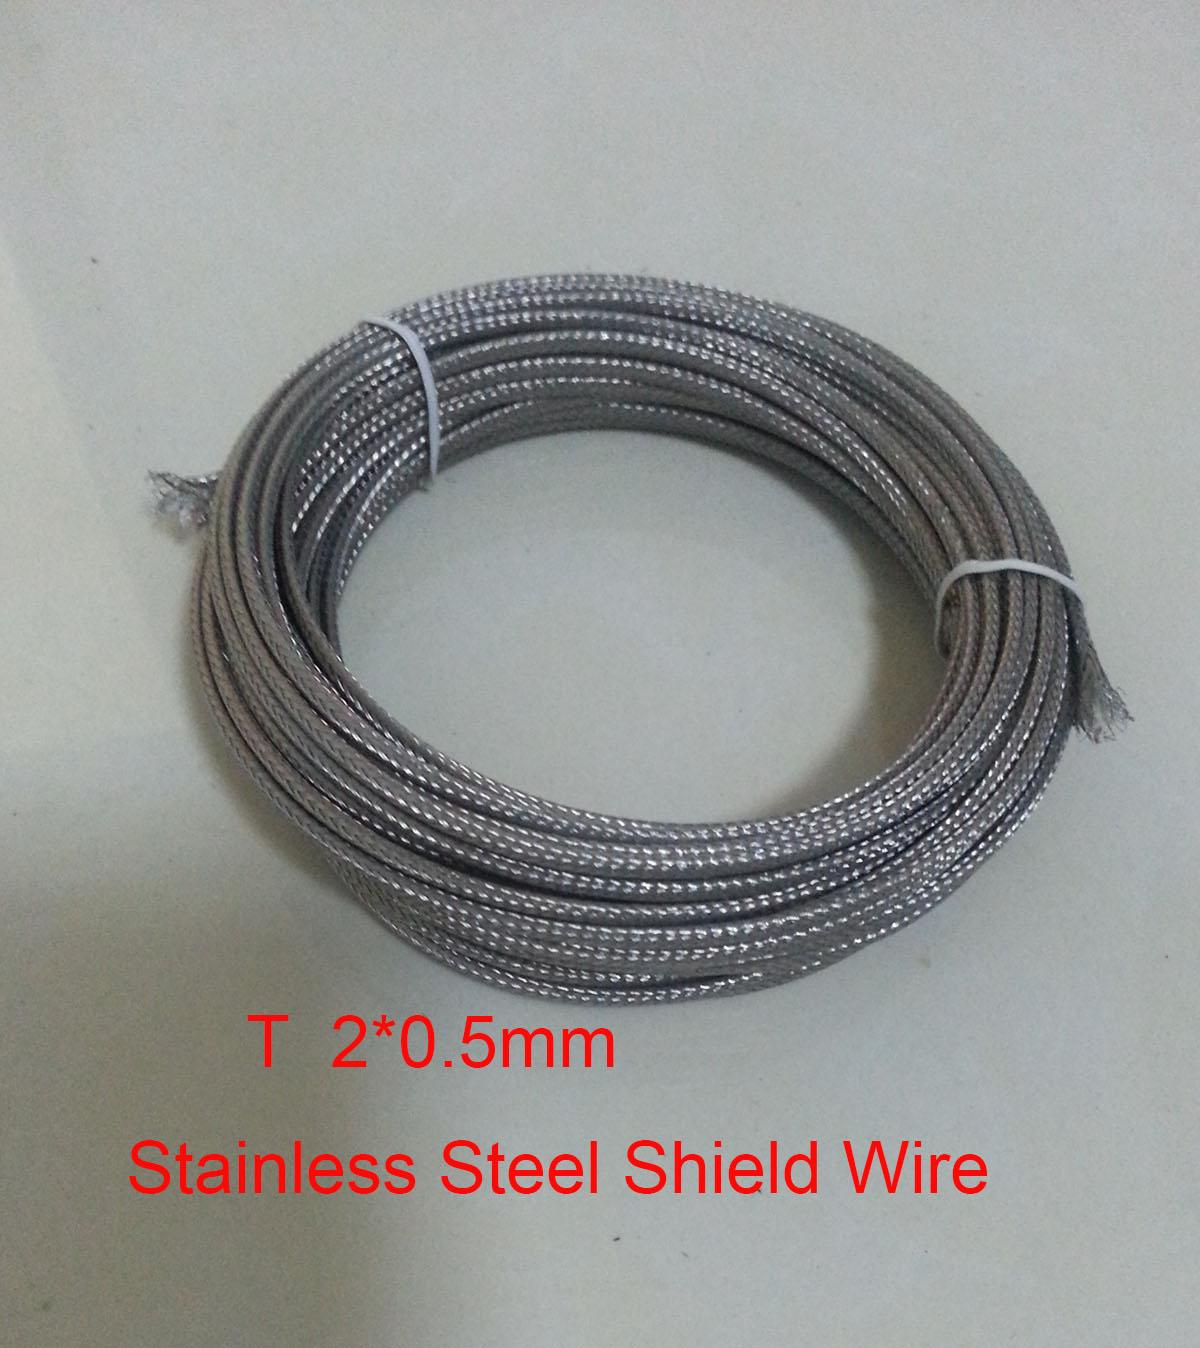 T Type 2*0.5mm Fiberglass Coated Stainless Steel Shield Thermocouple ...